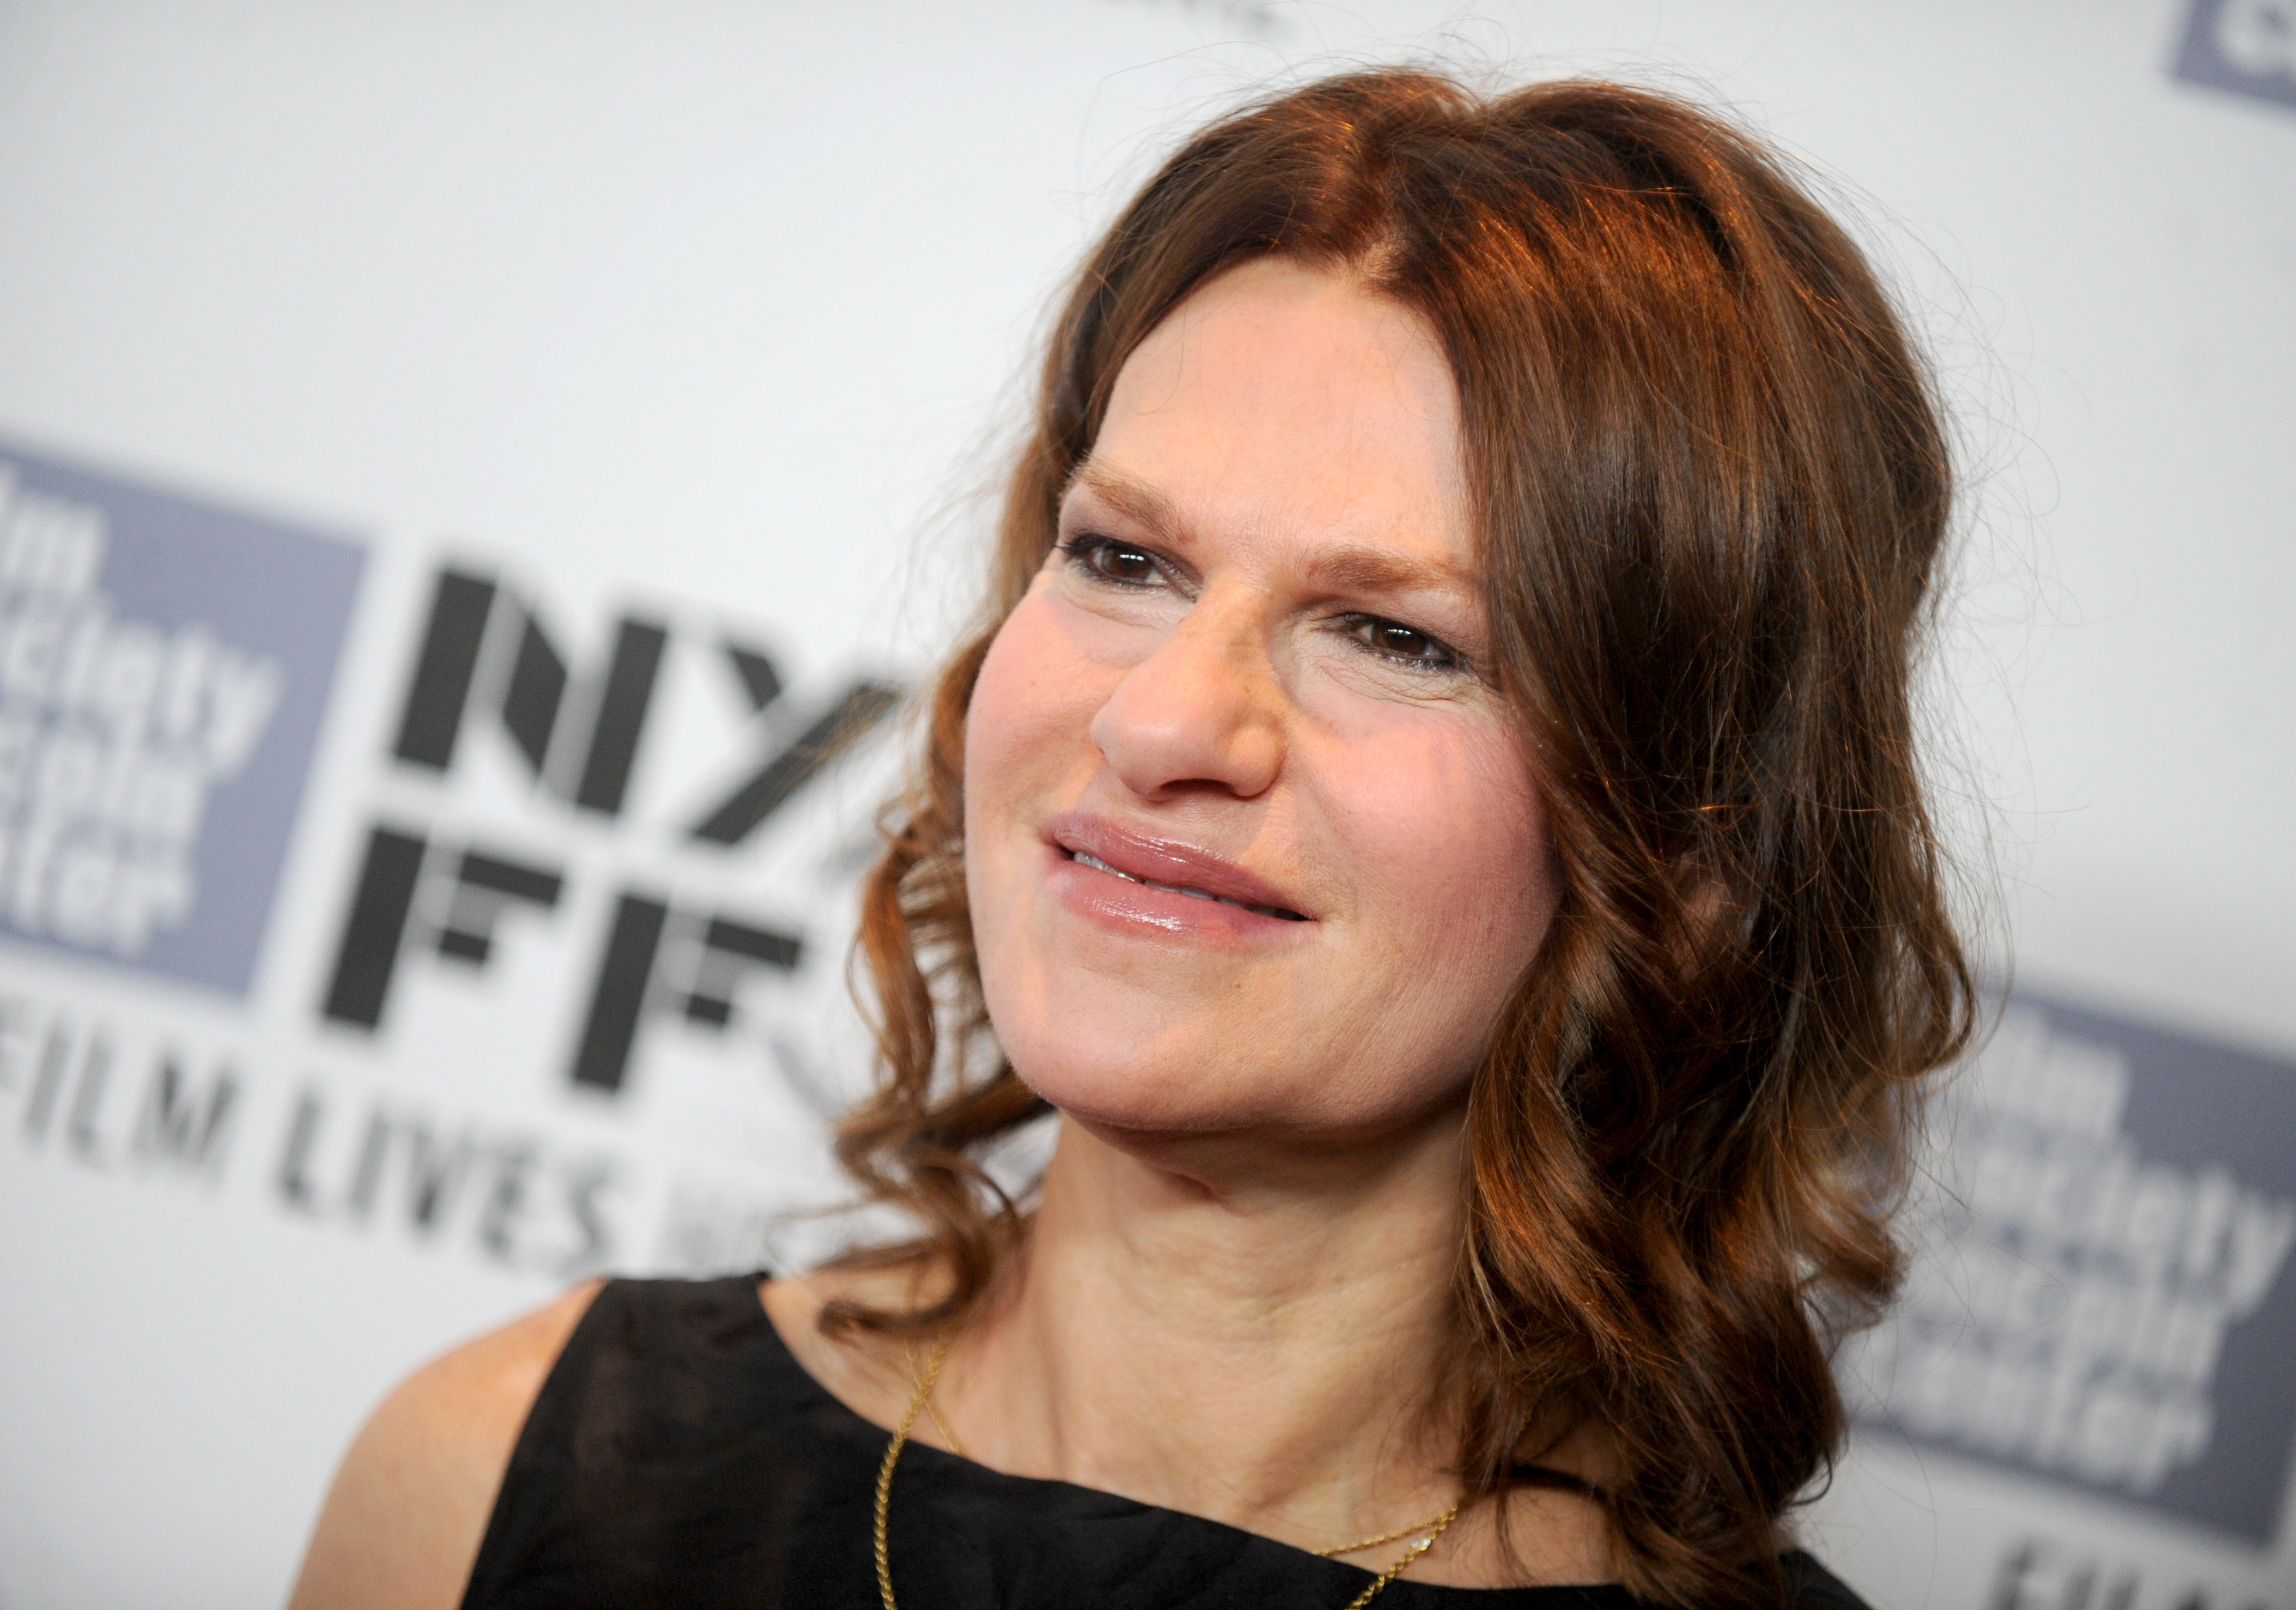 Sandra Bernhard attends the 53rd New York Film Festival premiere of Carol at Alice Tully Hall in New York City on Oct. 9, 2015.